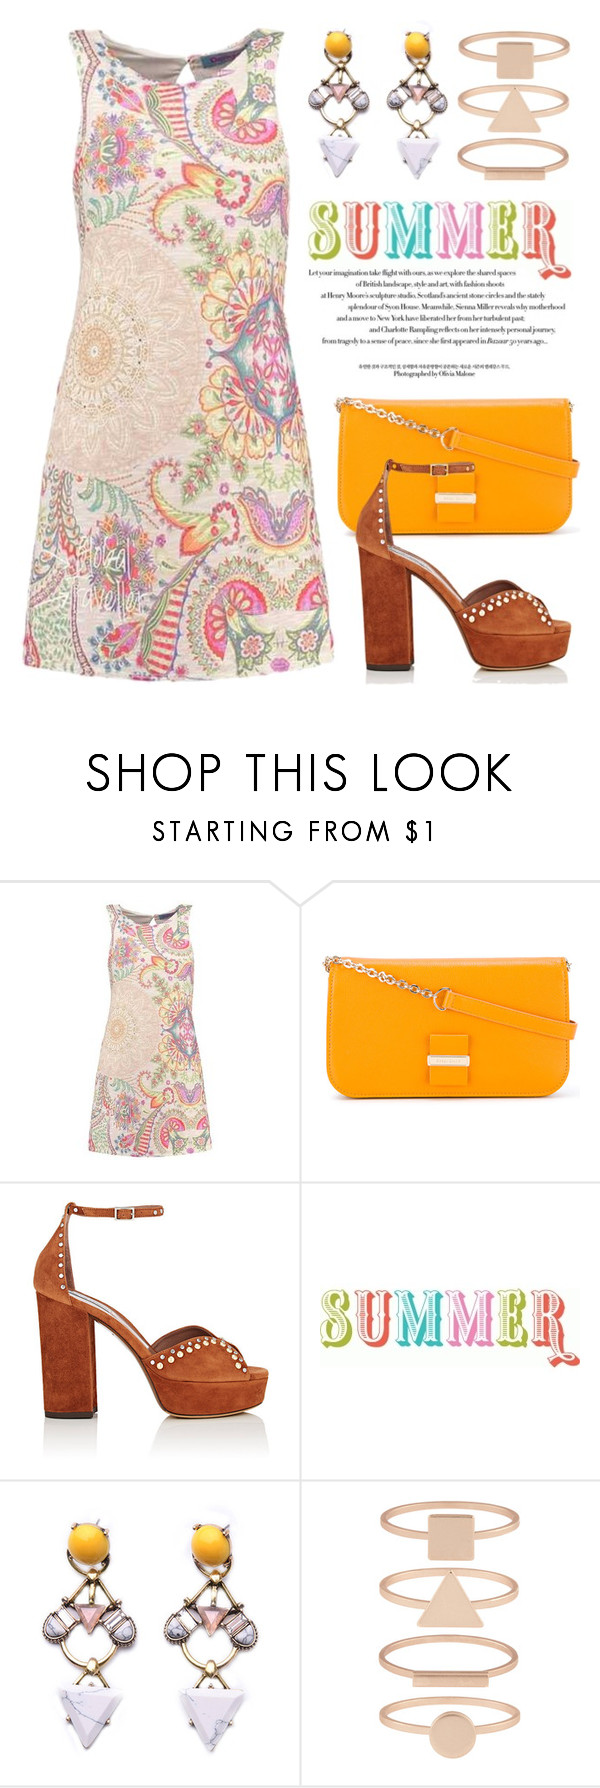 """Fashionable Summer Dresses 3963"" by boxthoughts ❤ liked on Polyvore featuring See by Chloé, Tabitha Simmons and Accessorize"